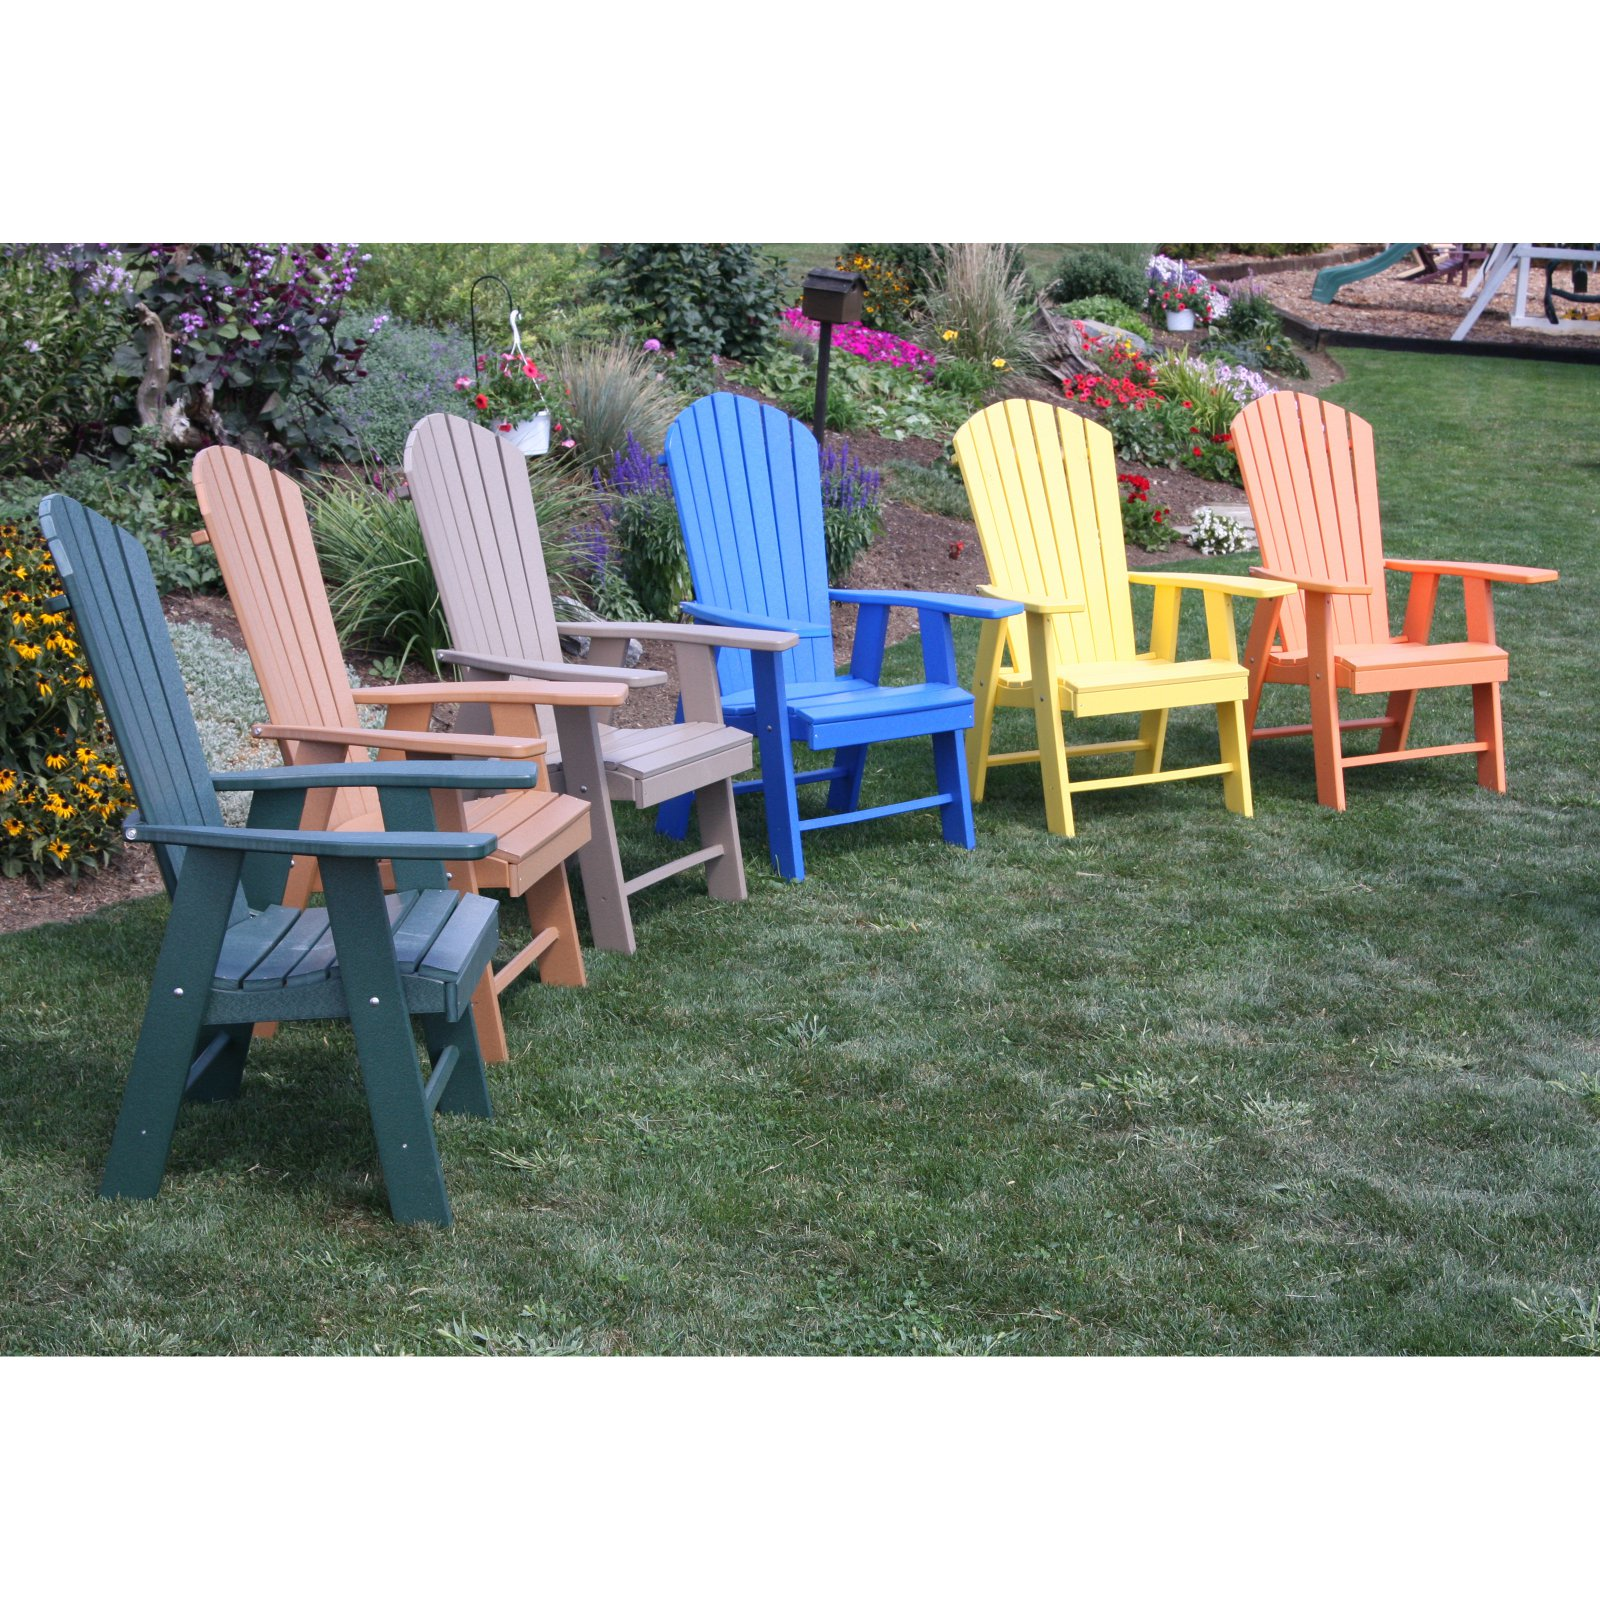 A u0026&; L Furniture Recycled Plastic High Seat Adirondack Chair - Walmart .com  sc 1 st  Walmart & A u0026amp; L Furniture Recycled Plastic High Seat Adirondack Chair ...